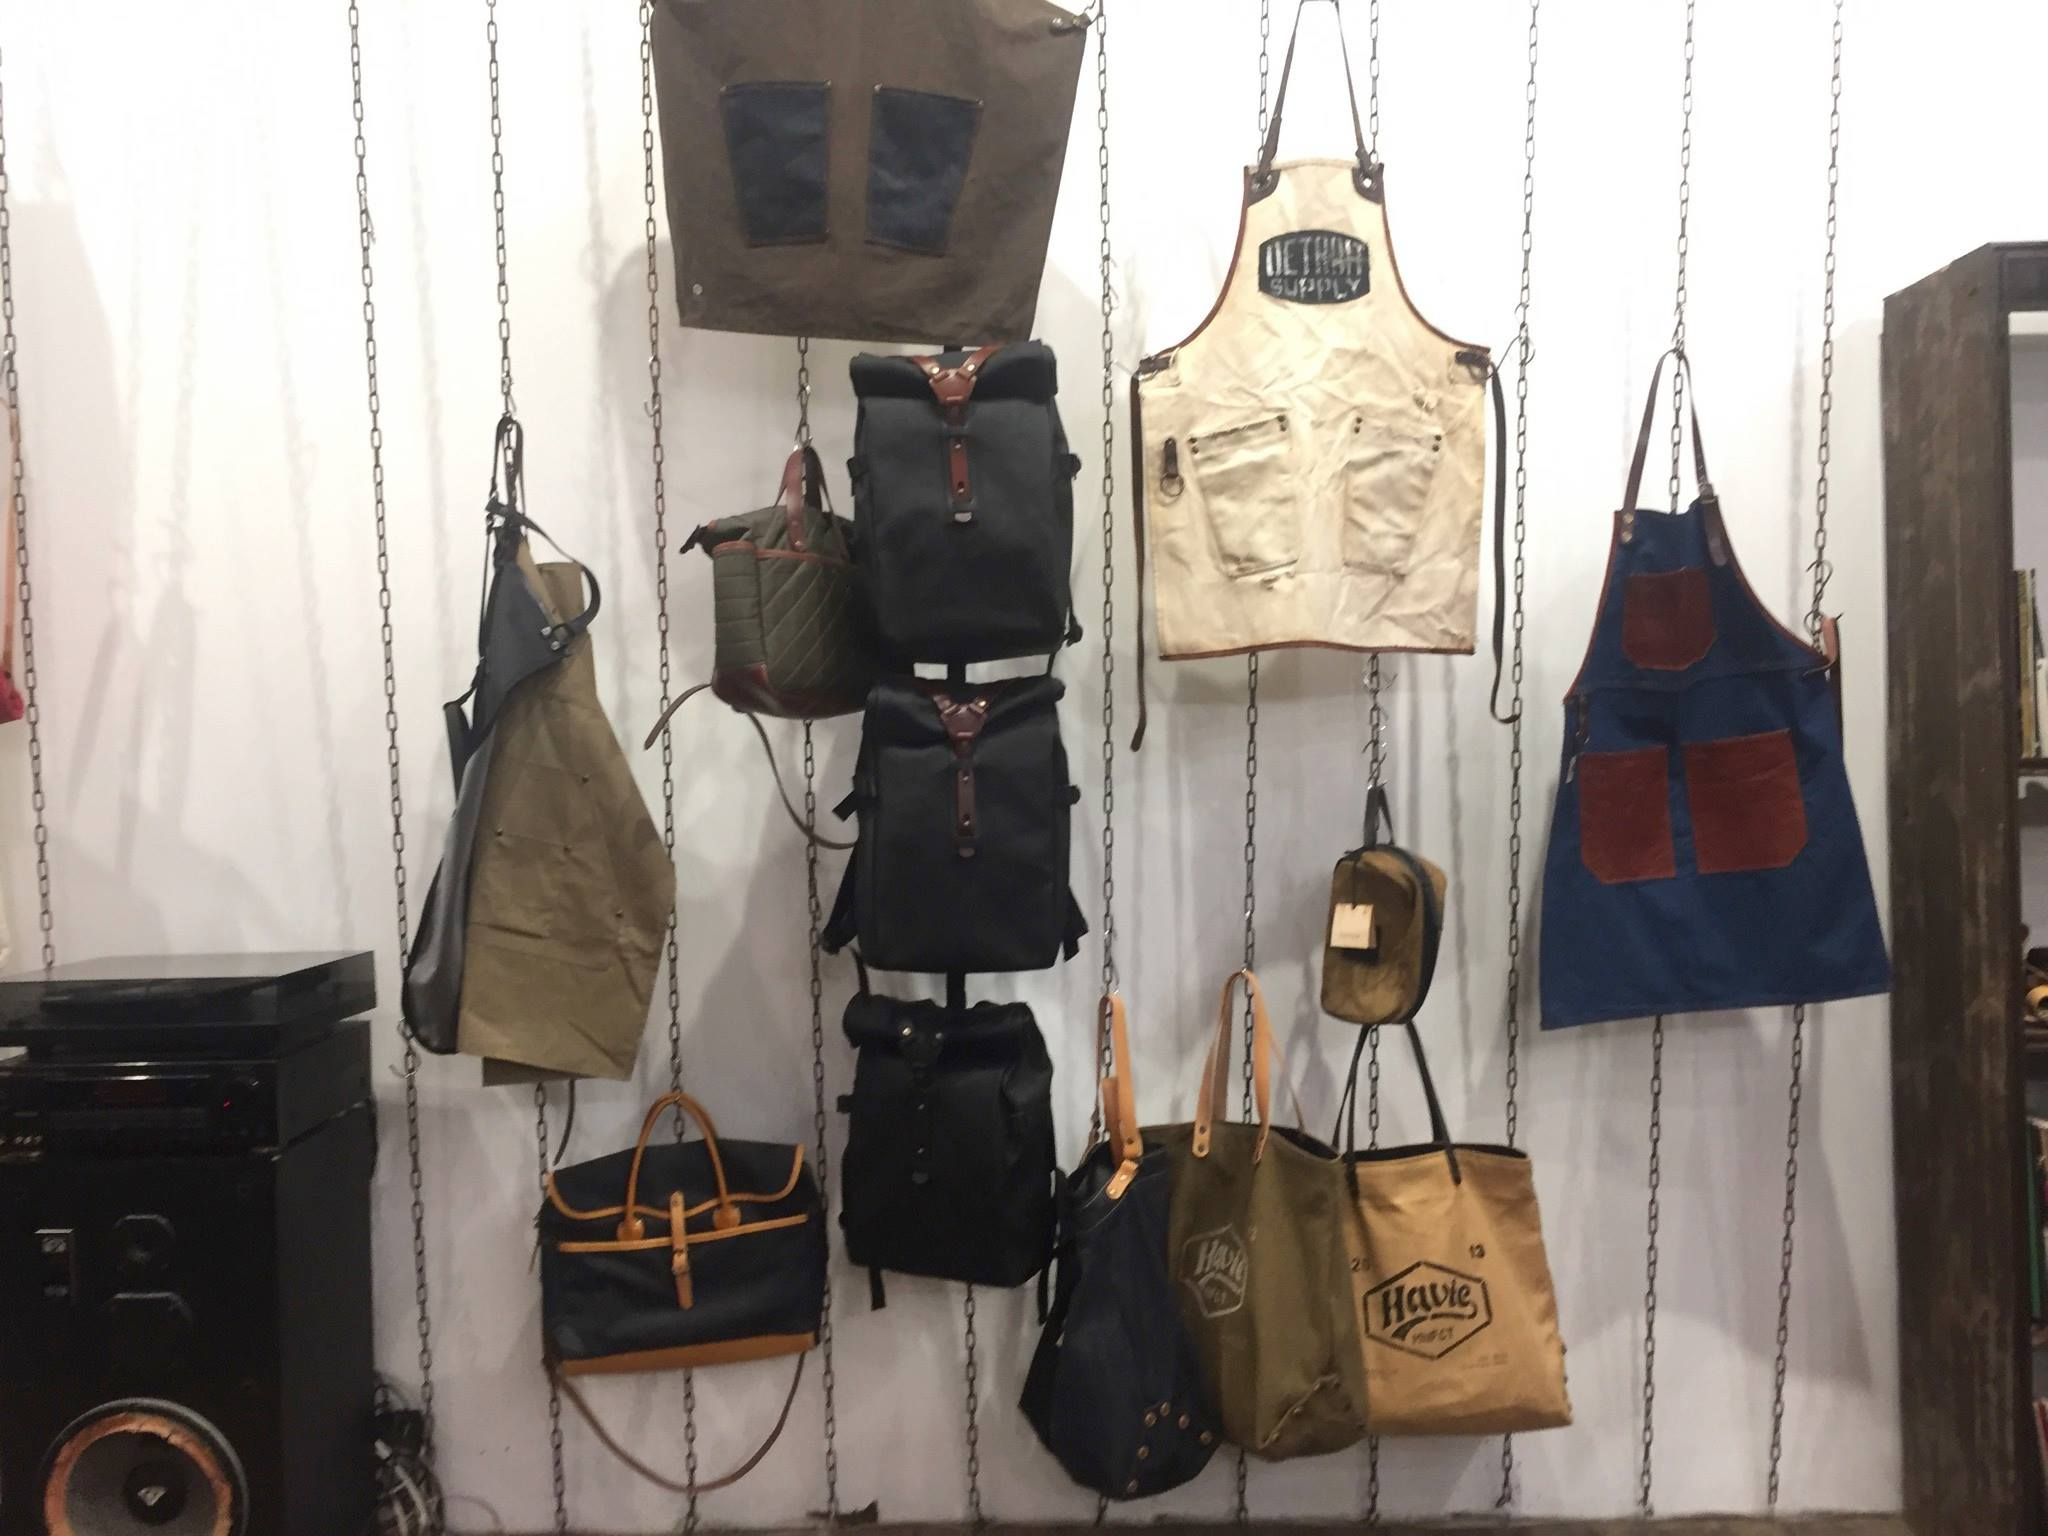 havie handmade products bags in tel aviv Jaffa, Israel